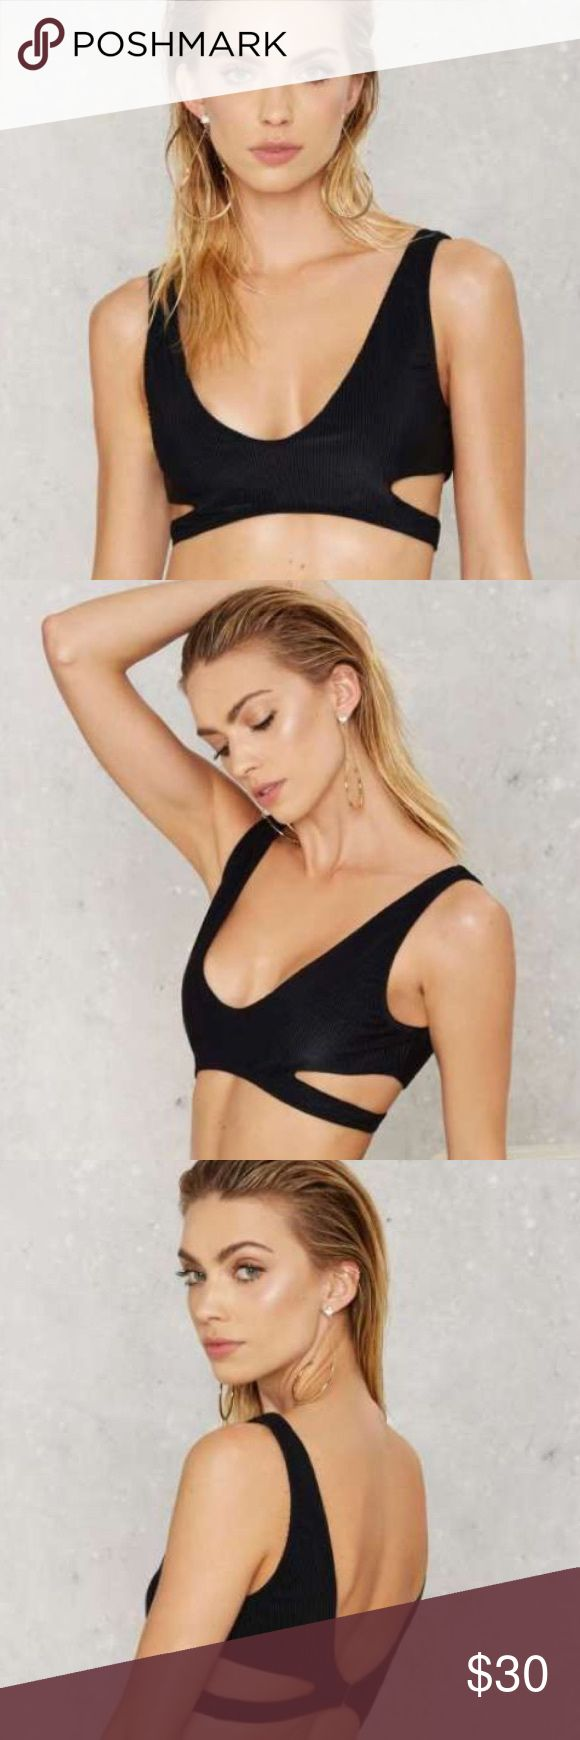 💥HP 10/22 🎉💥Nasty Gal Cut Out Bikini Top SZ XS Gorgeous Nasty Gal black cut out bikini top! Worn ONE TIME! This black bikini top has a plunging neckline, open back design, cut-out detailing at sides lining at bust, and silver hook closure at back. SIZE XS. *Nylon/Spandex/Micronylon  *Runs true to size  *Hand wash cold  *Made in U.S.A. Nasty Gal Swim Bikinis